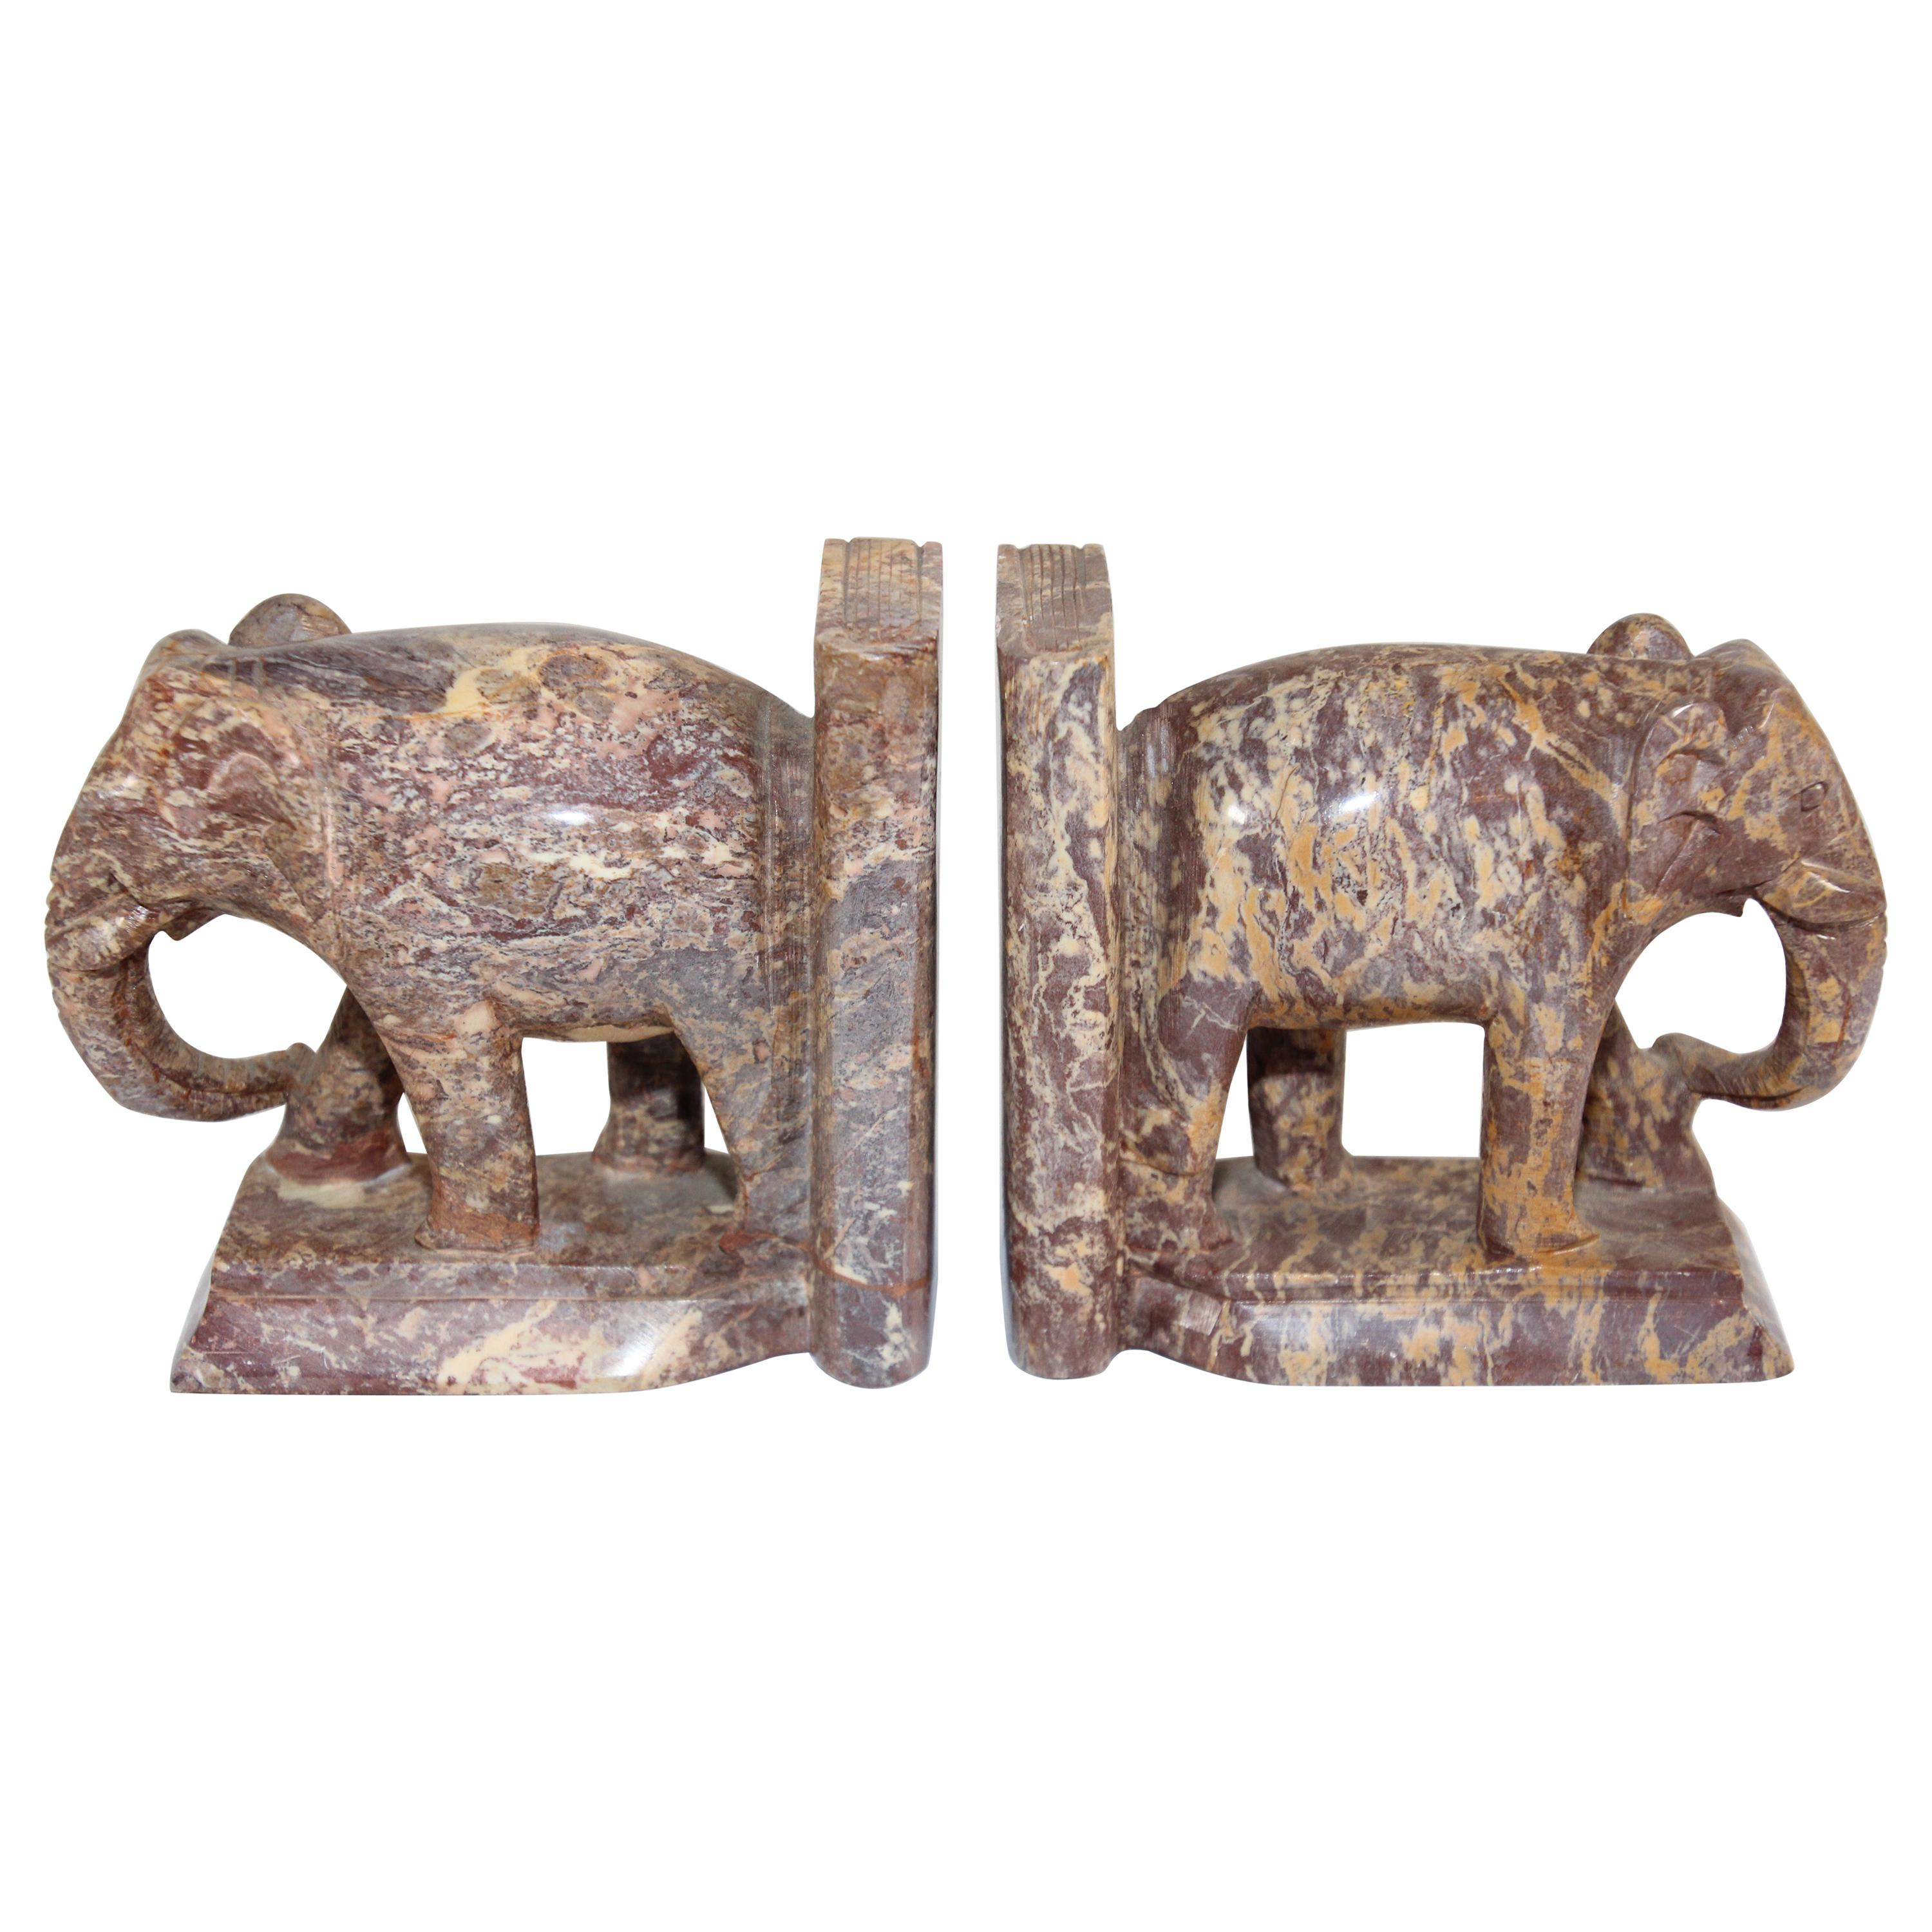 Hand-Carved Elephant Marble Sculpture Bookends, Art Deco Style, 1950s